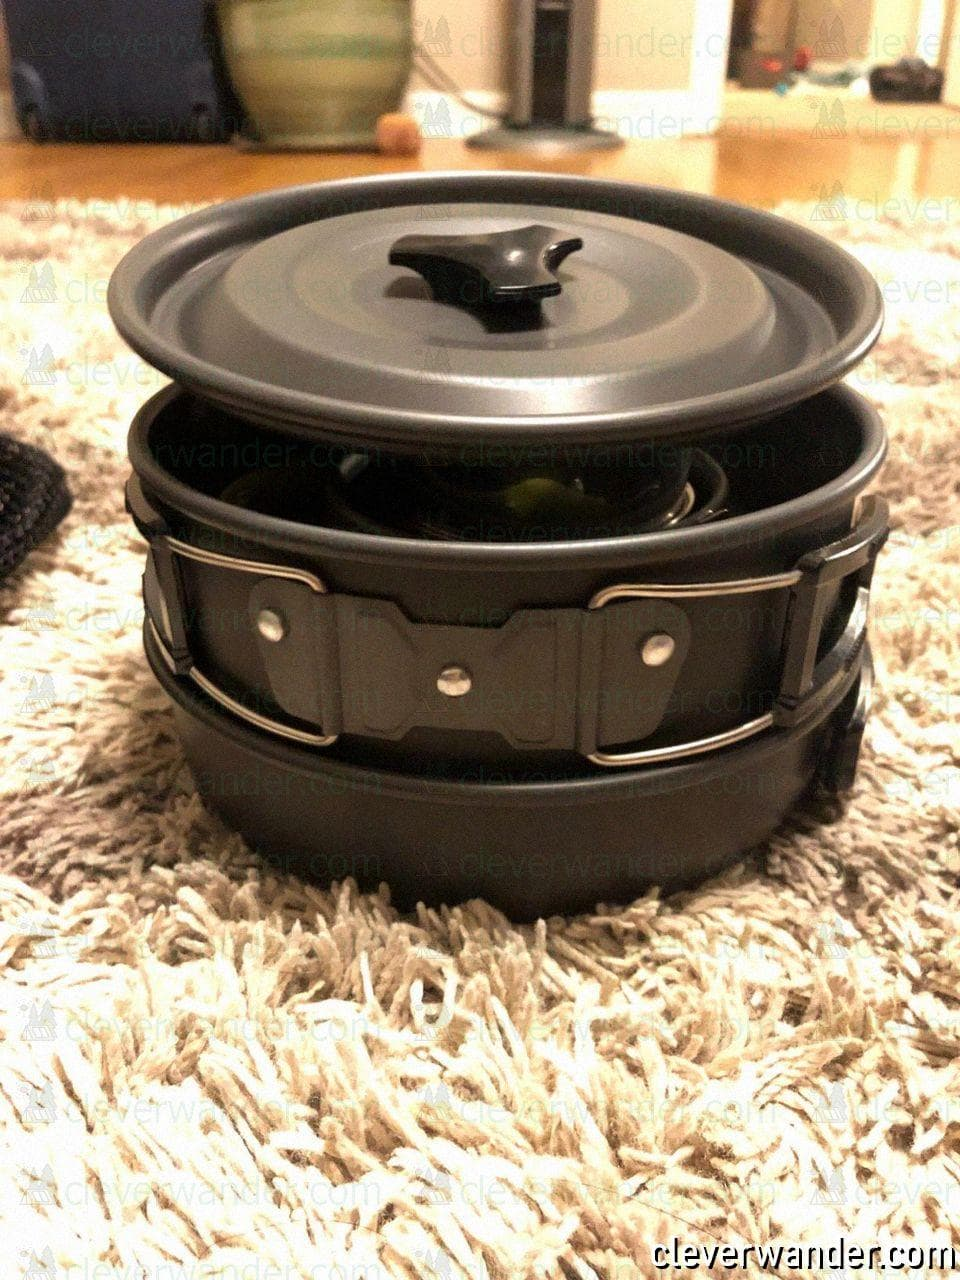 Odoland Camping Cookware - image review - 1